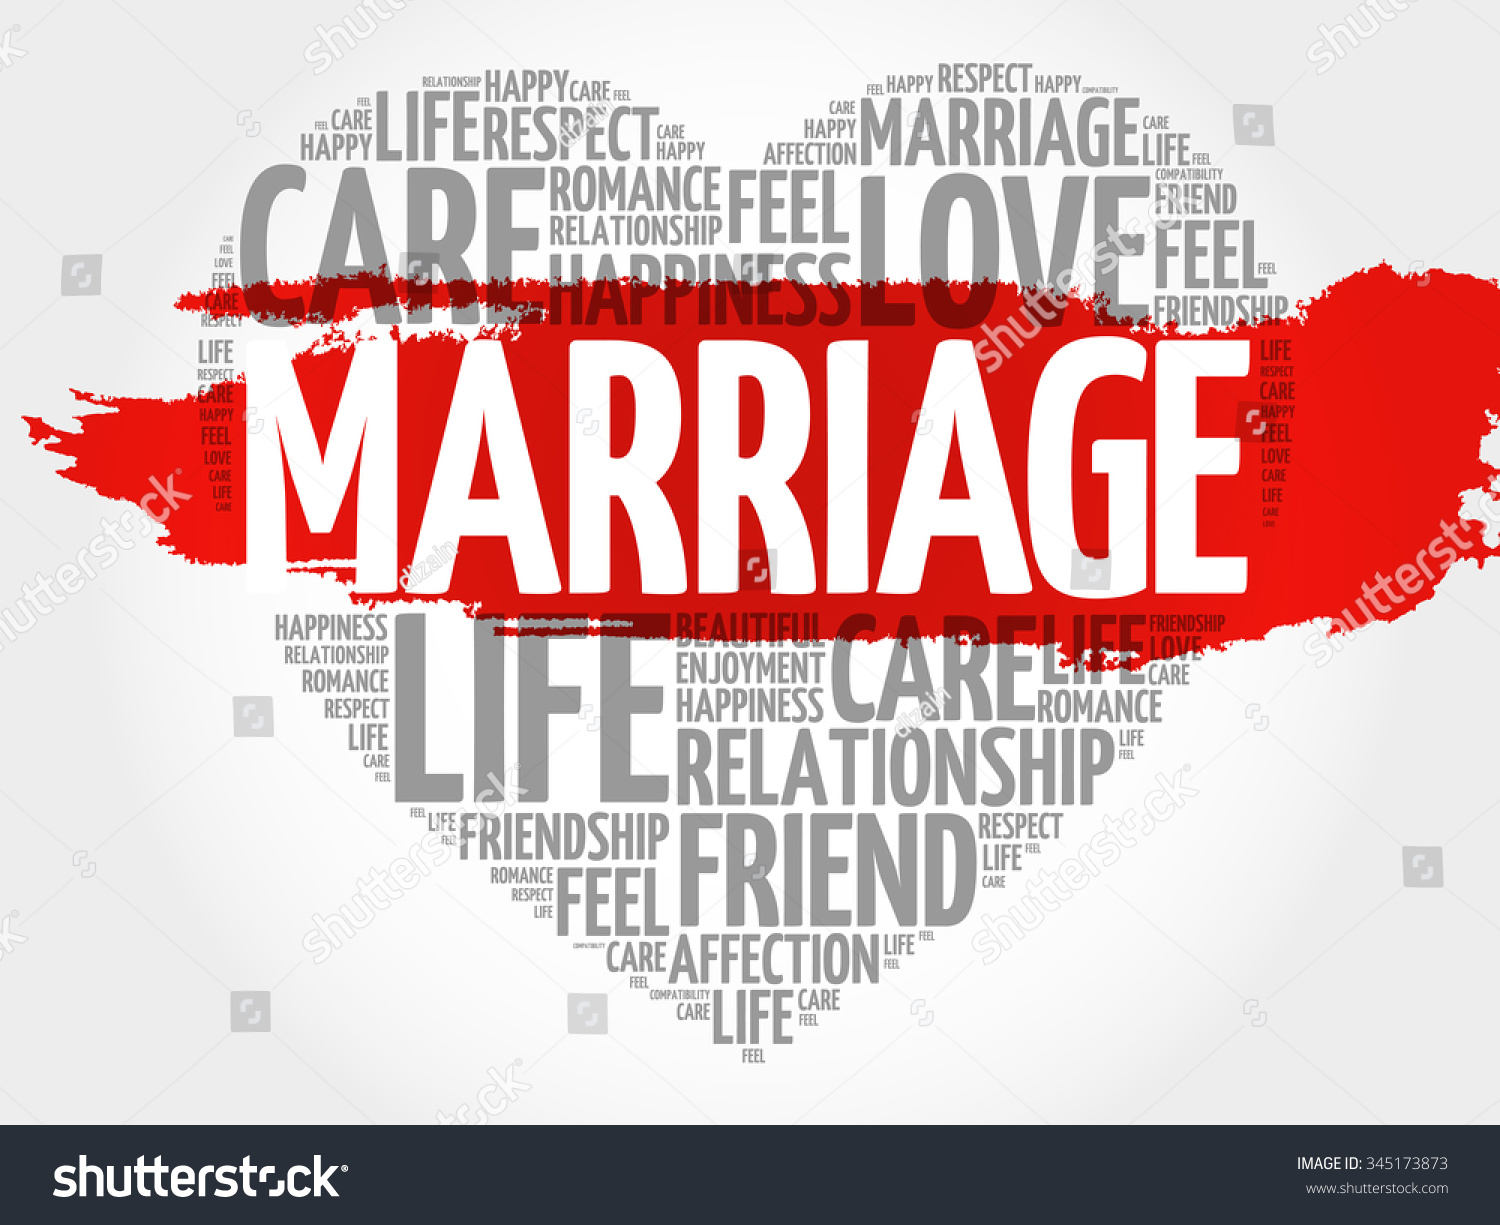 Marriage Concept Heart Word Cloud Stock Vector ...